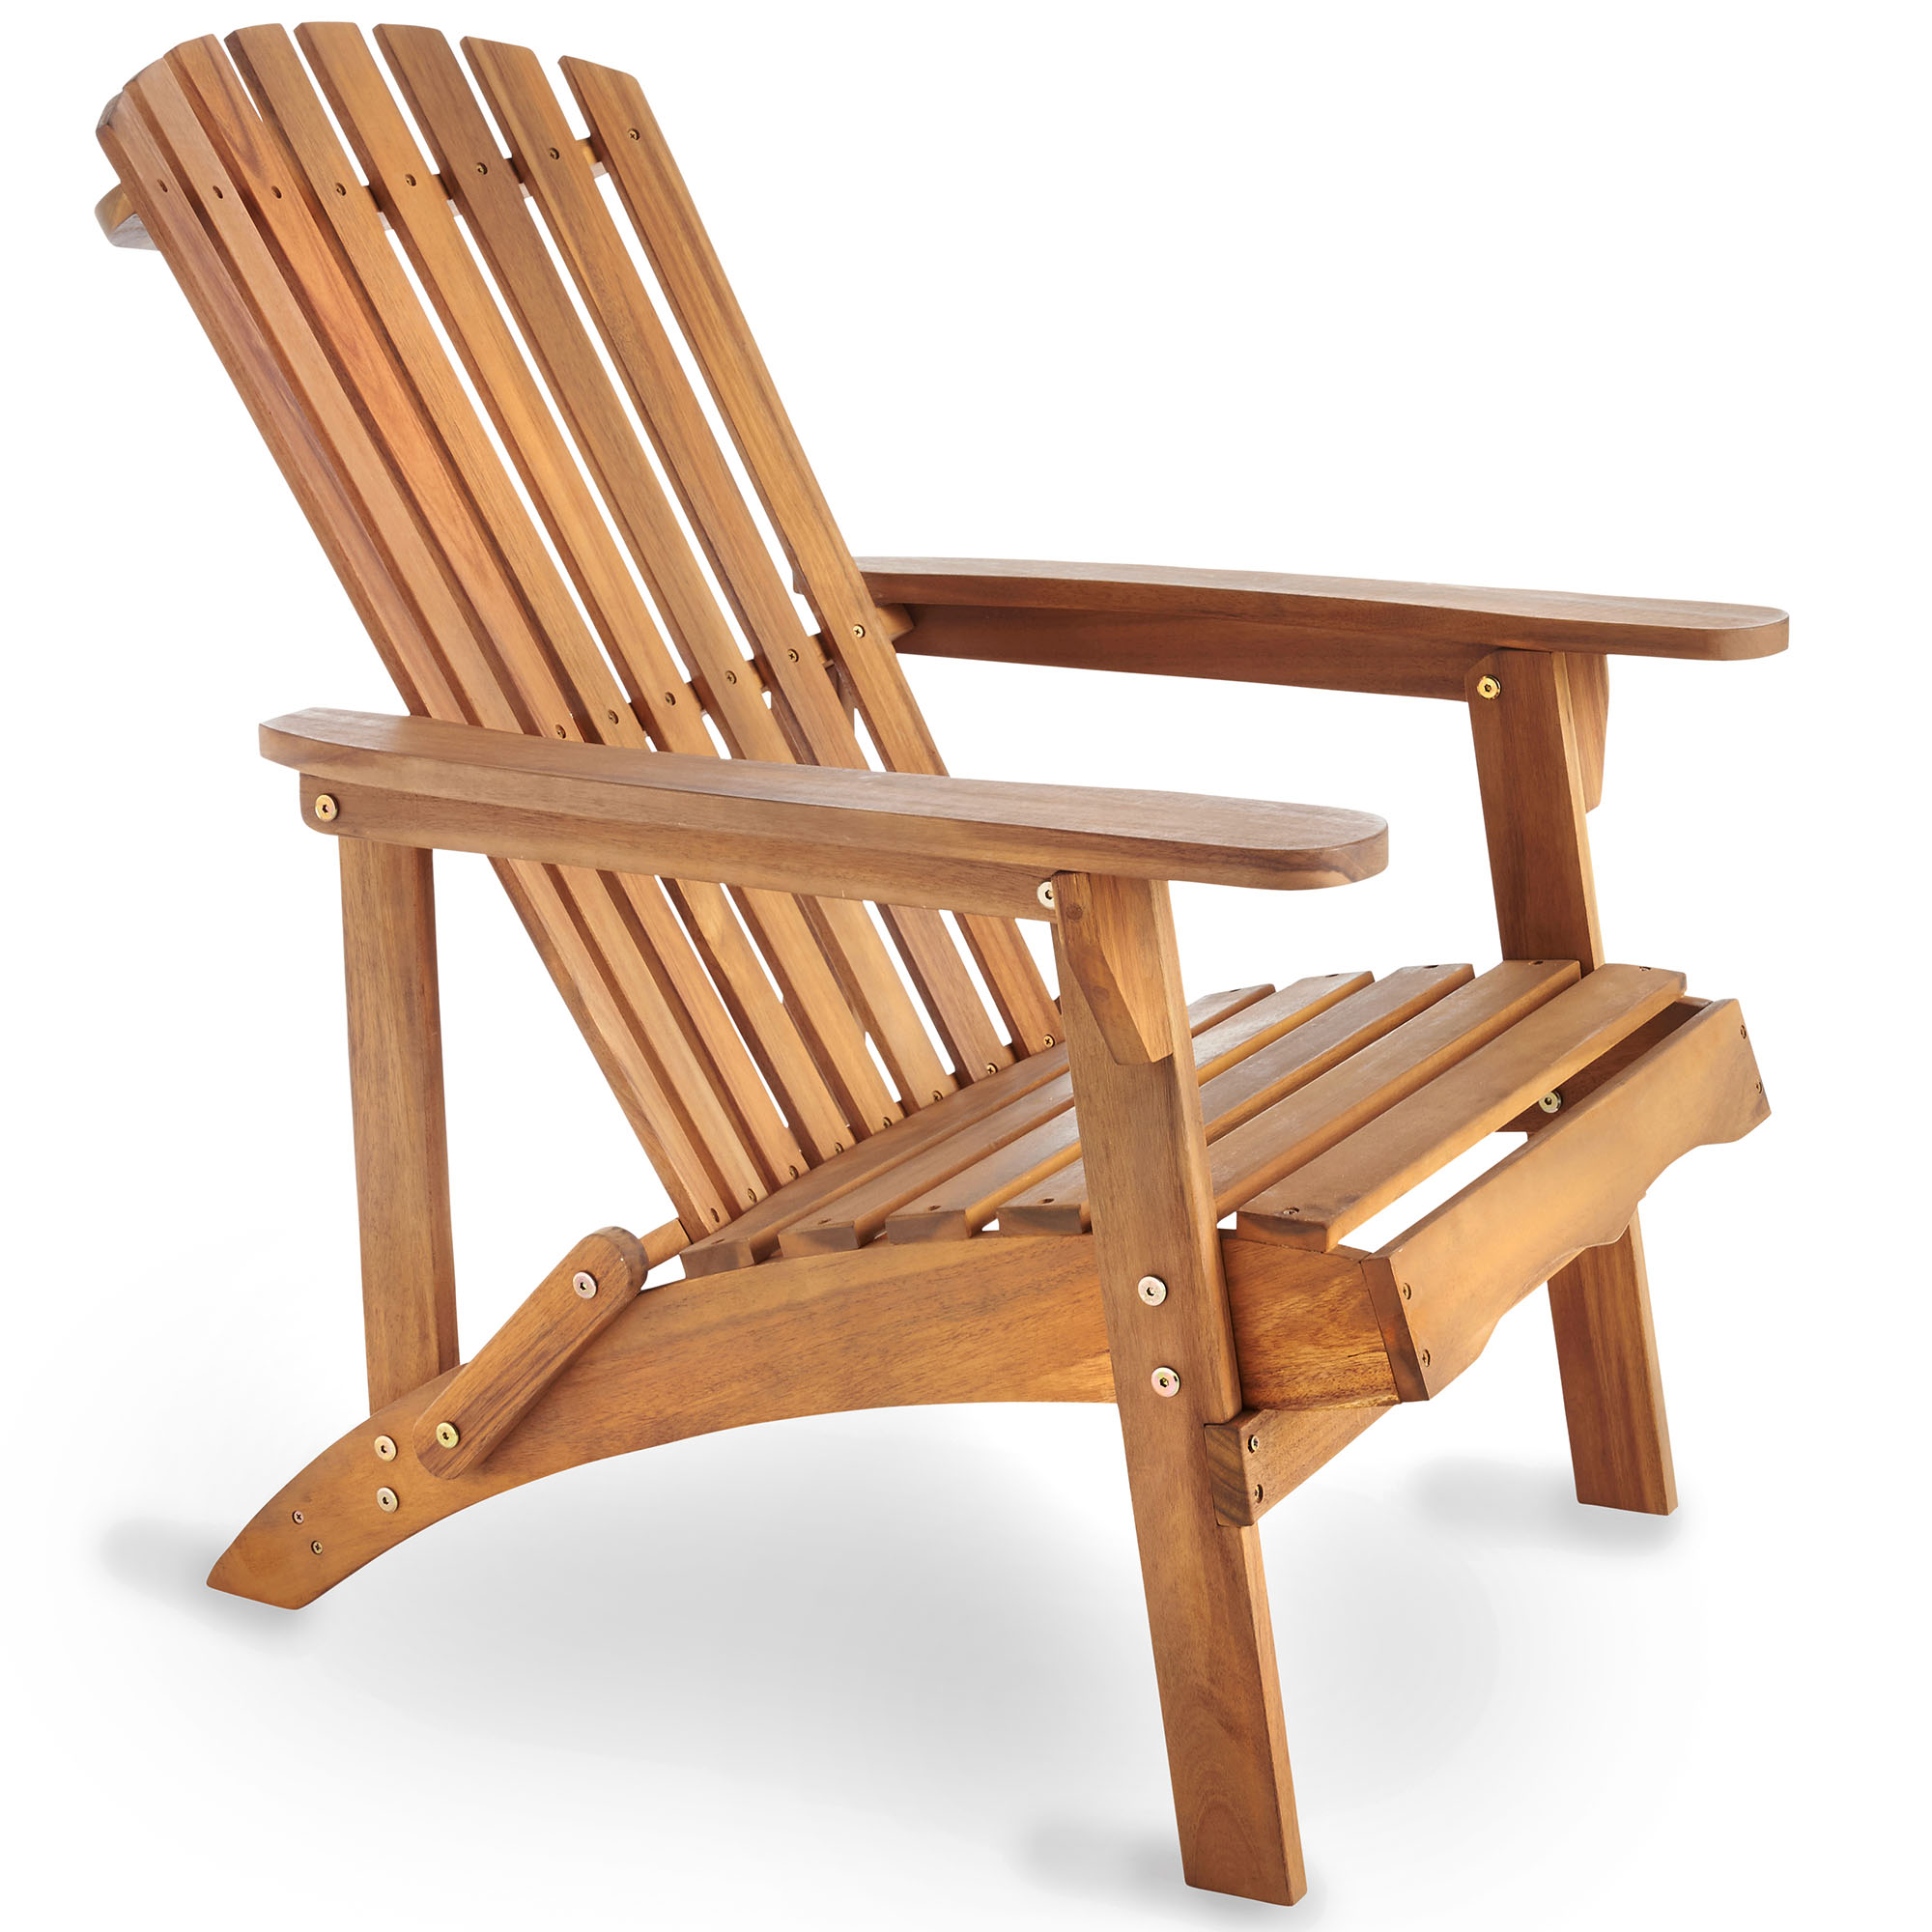 Wooden Chairs Vonhaus Adirondack Chair Outdoor Garden Patio Pool Balcony